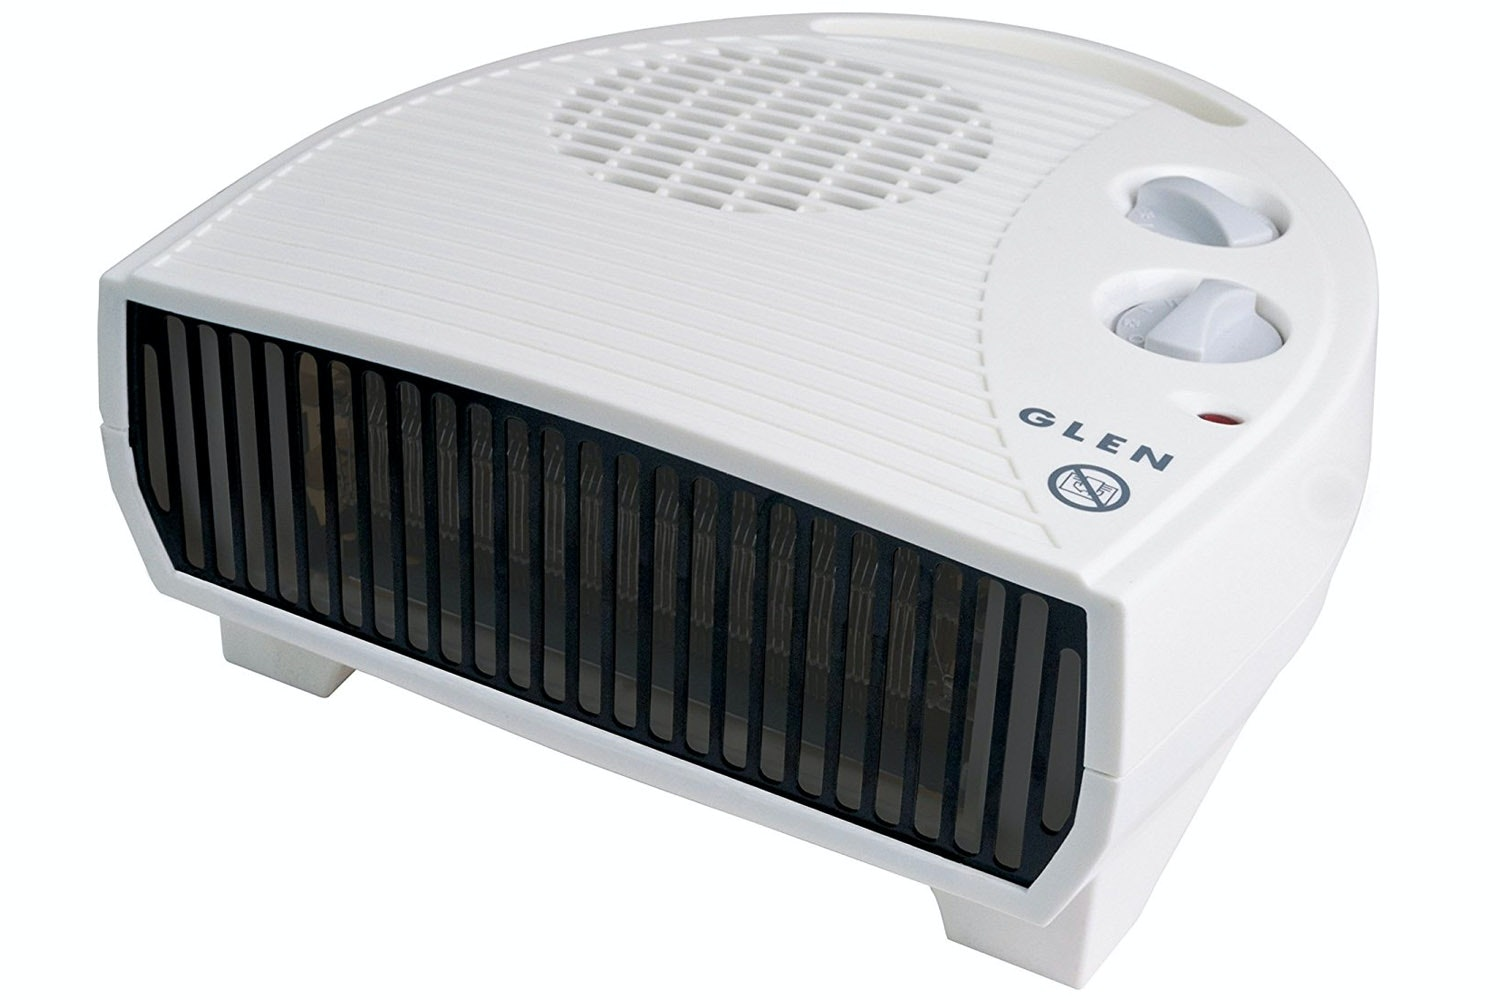 Glen 3kW Electric Flat Fan Heater | GF30TSN